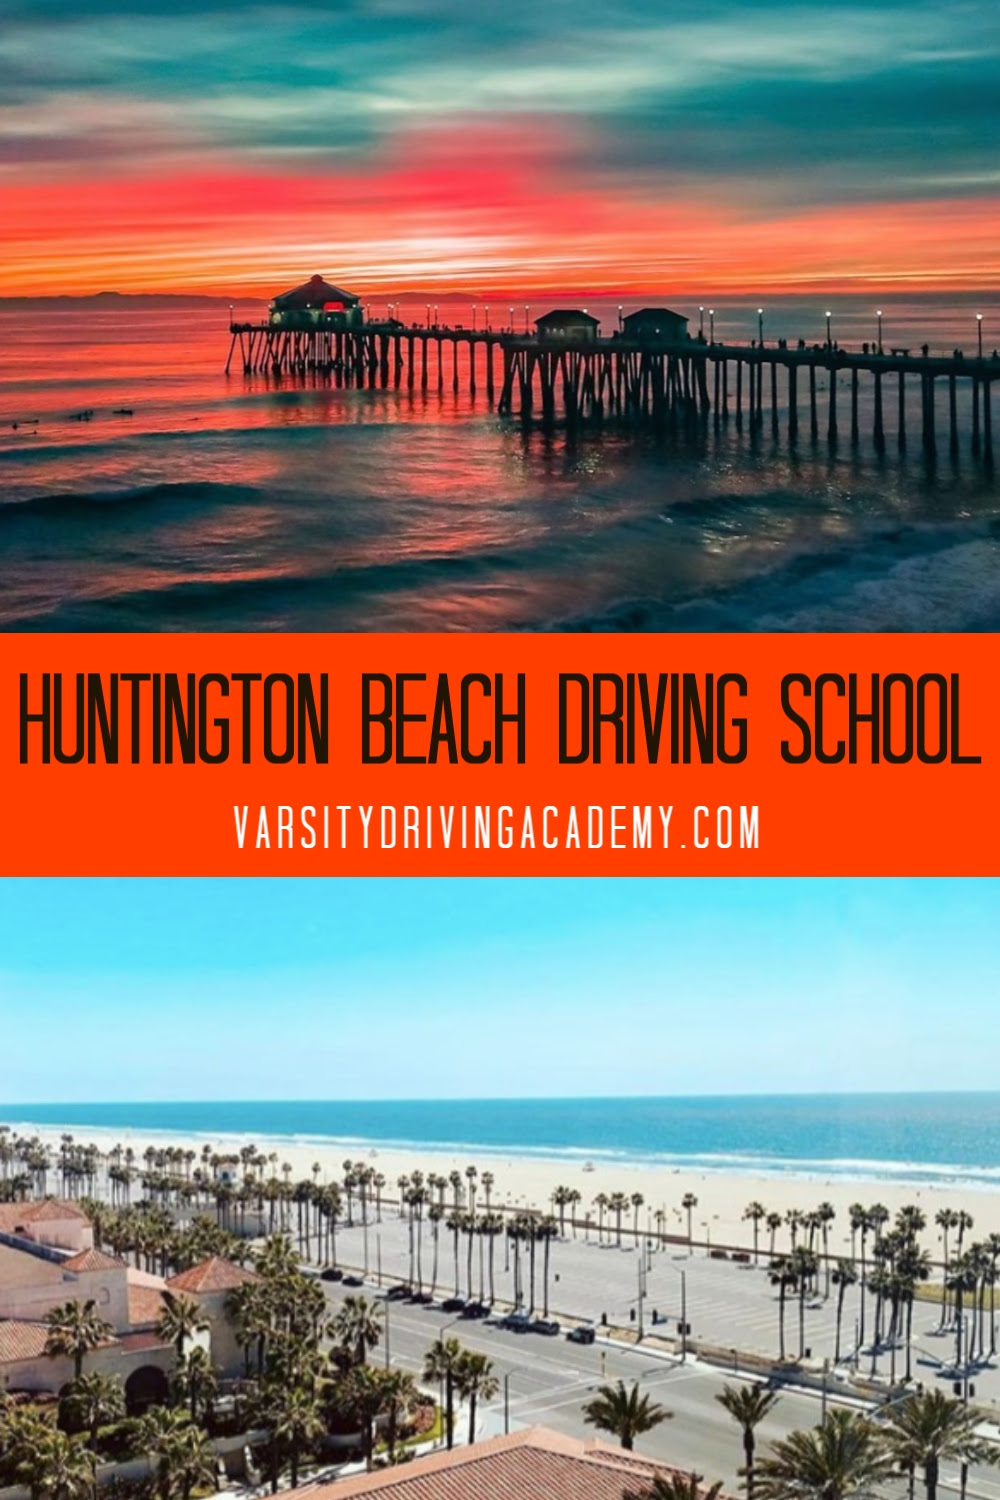 Varsity Driving Academy is the best Huntington Beach driving school offering defensive drivers ed for teens as well as the best driving lessons for adults and teens in Huntington Beach.